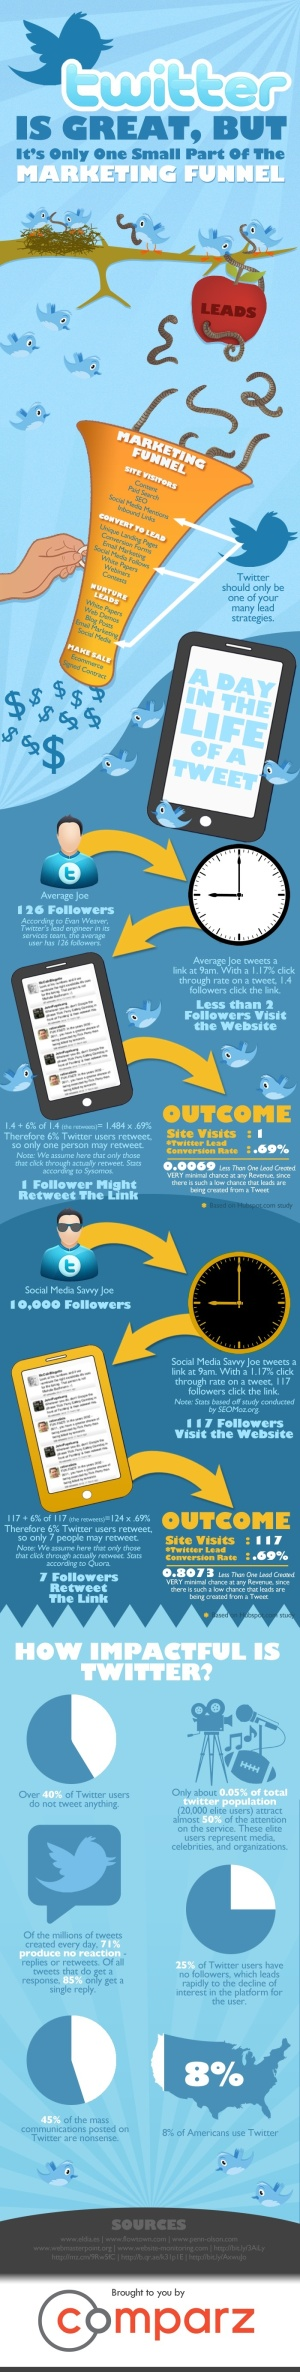 Twitter marketing - one small part of the marketing funnel